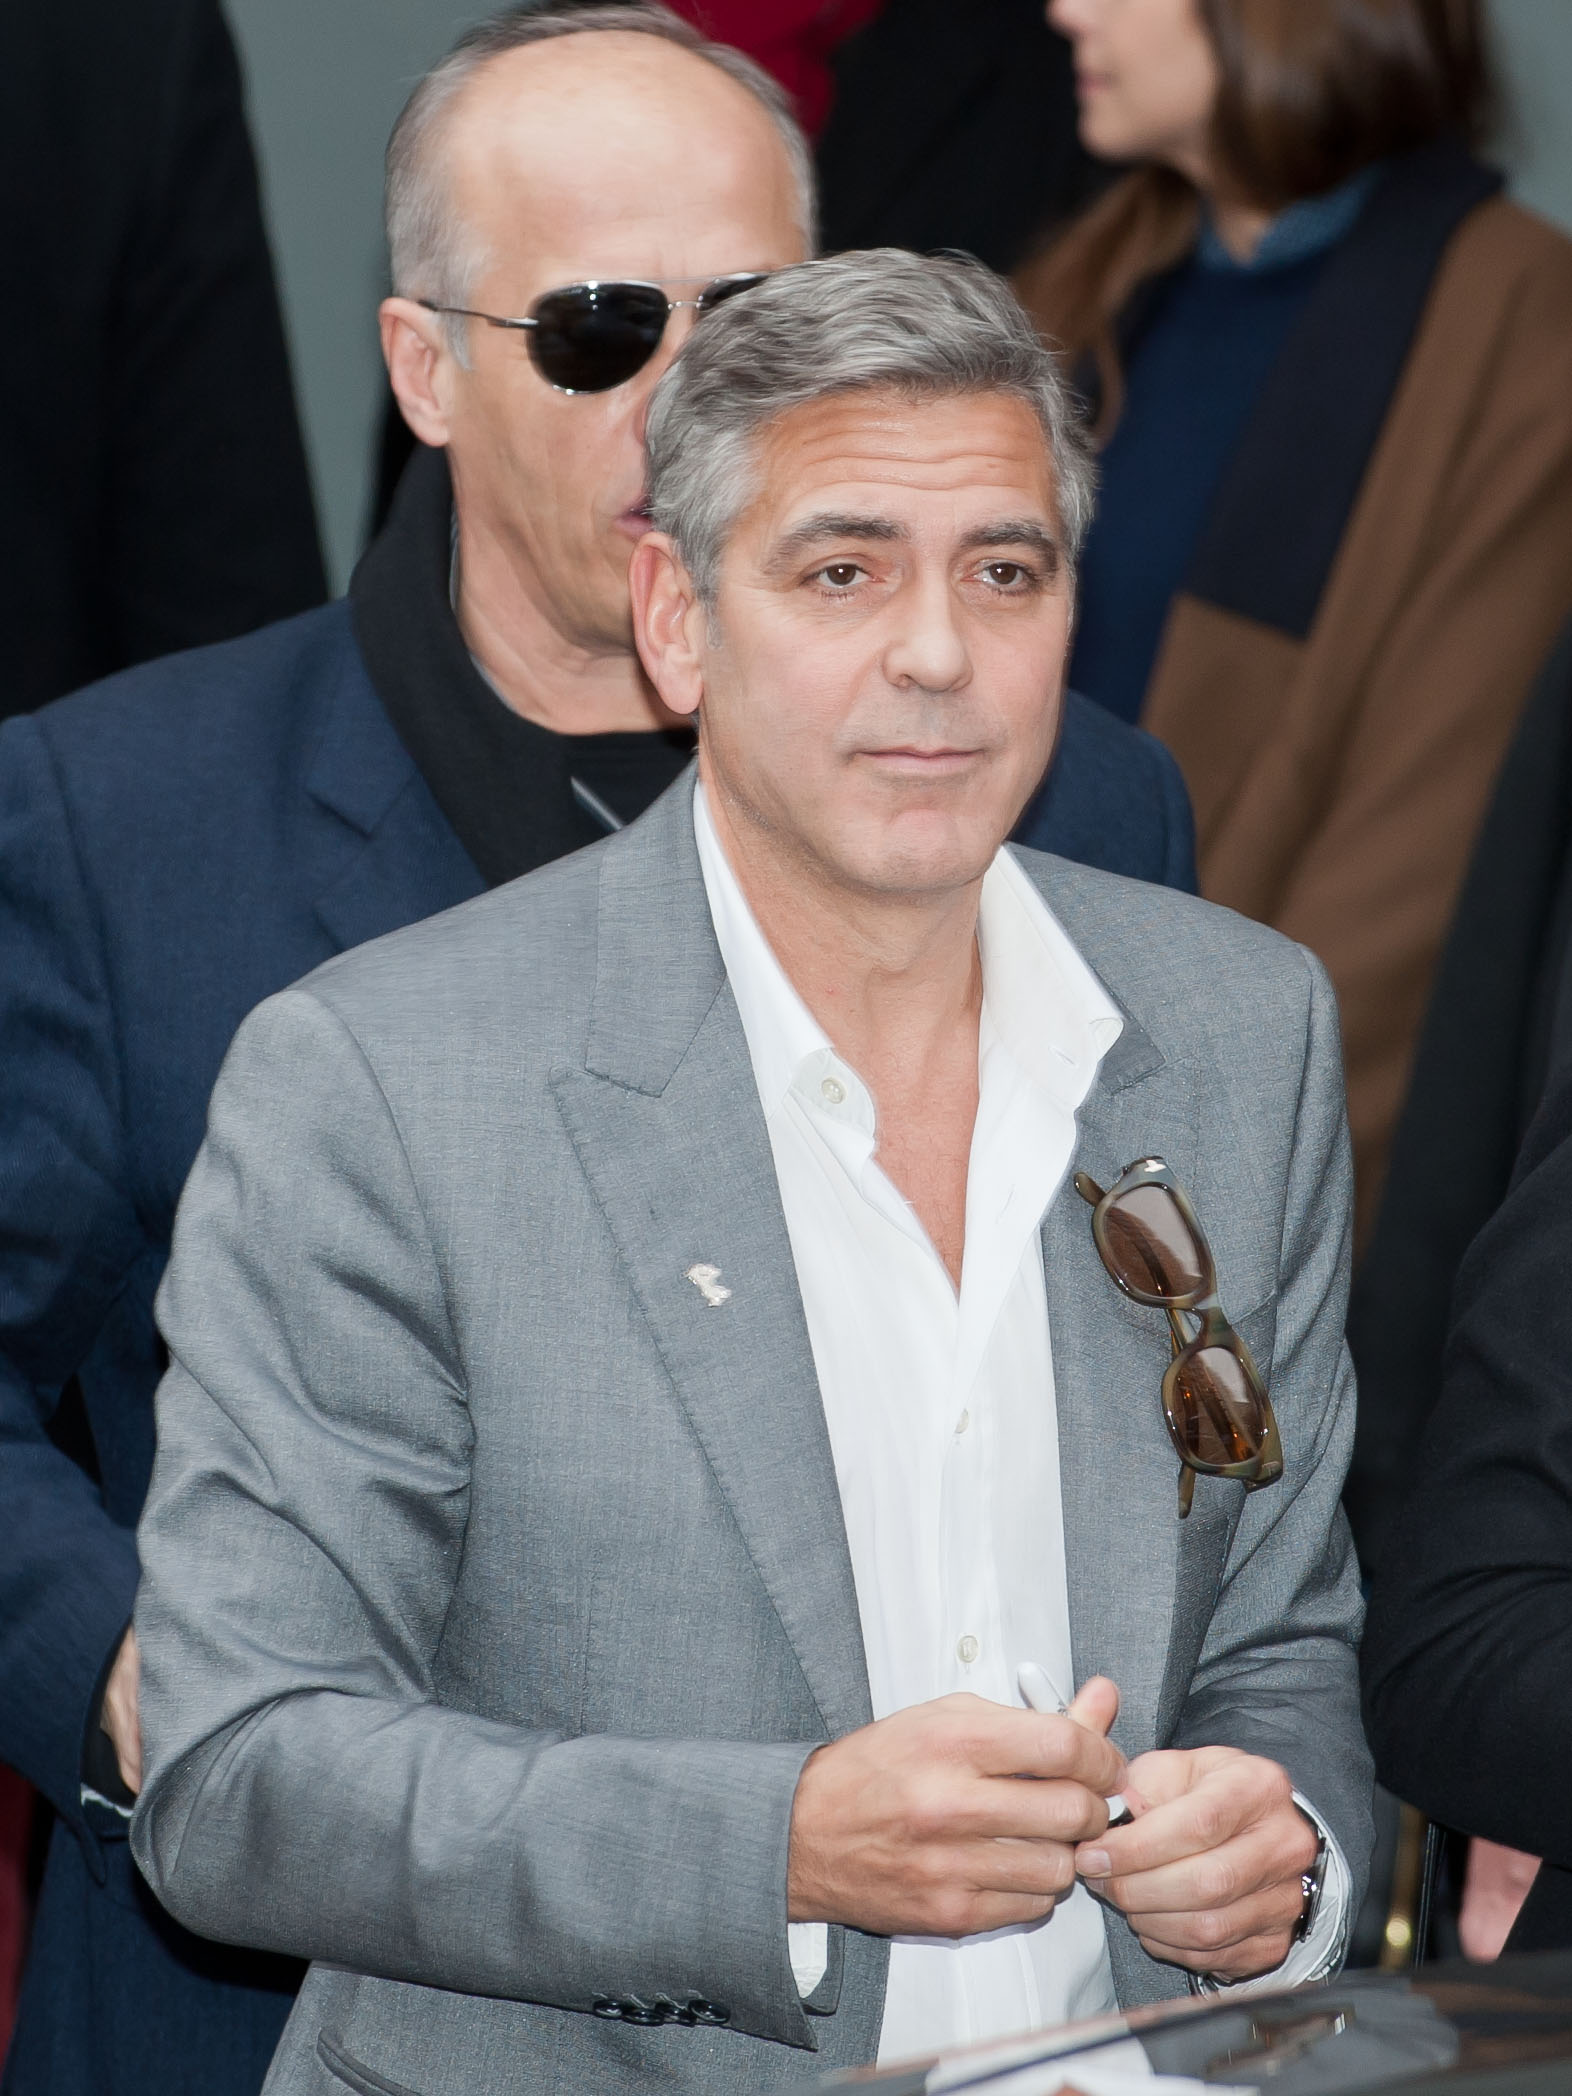 Depiction of George Clooney